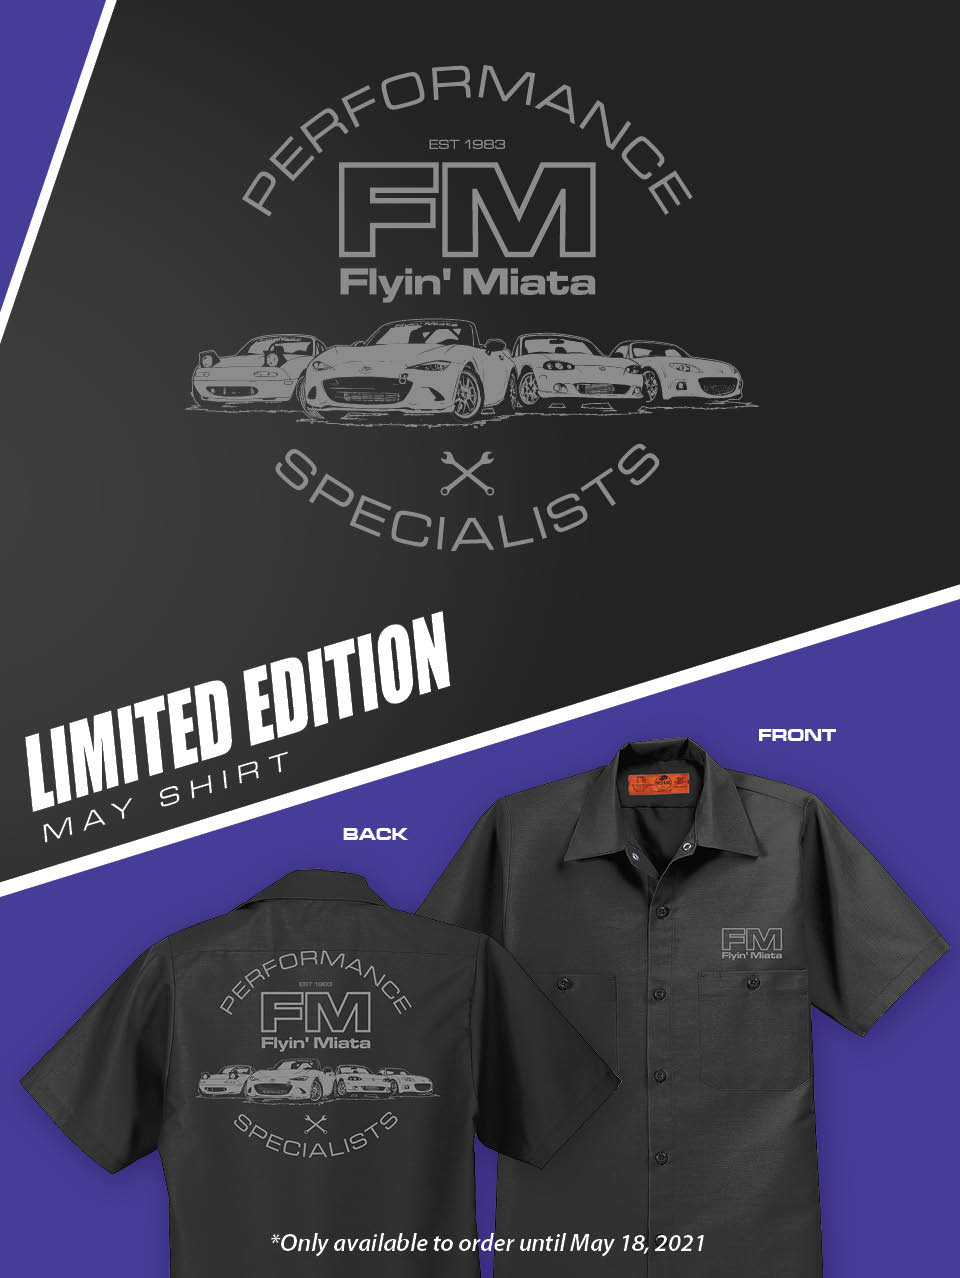 NEW! FM Exclusive Limited Edition May Shirt!